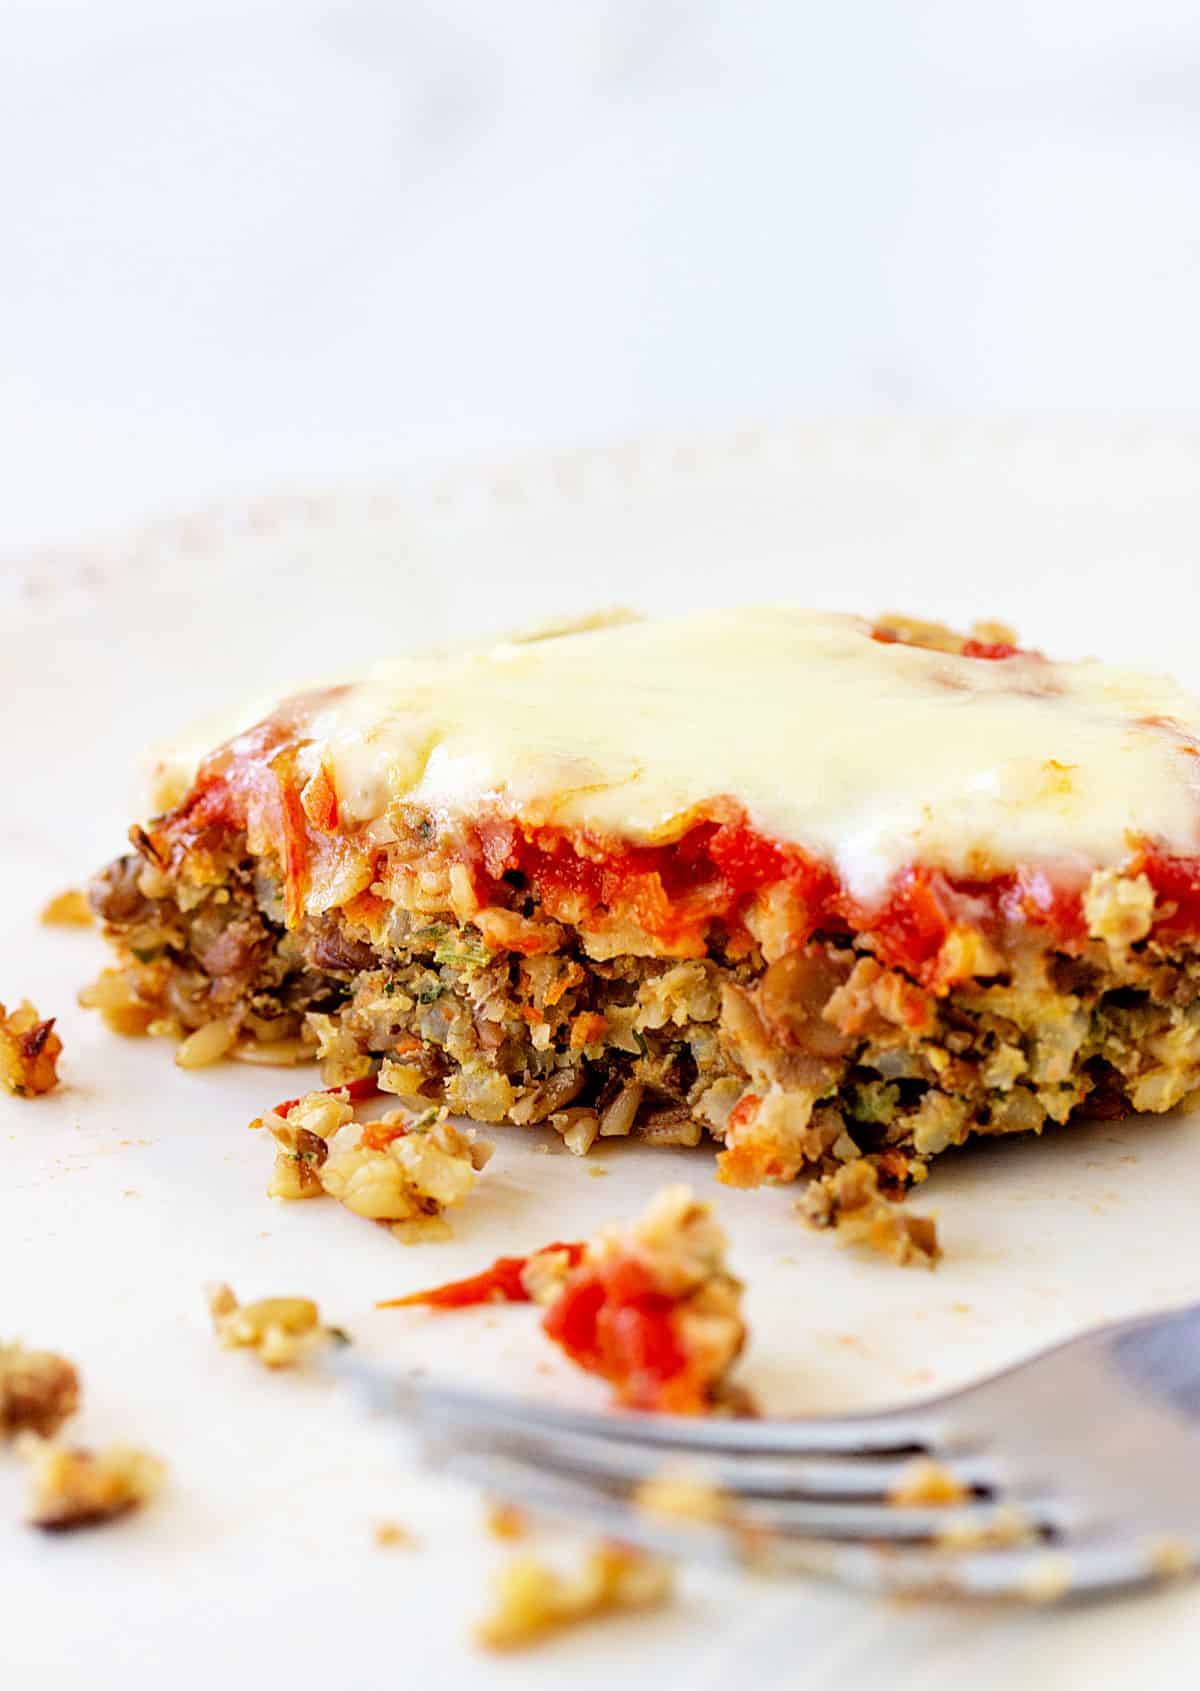 White plate with half a cheese and tomato topped lentil burger, a fork